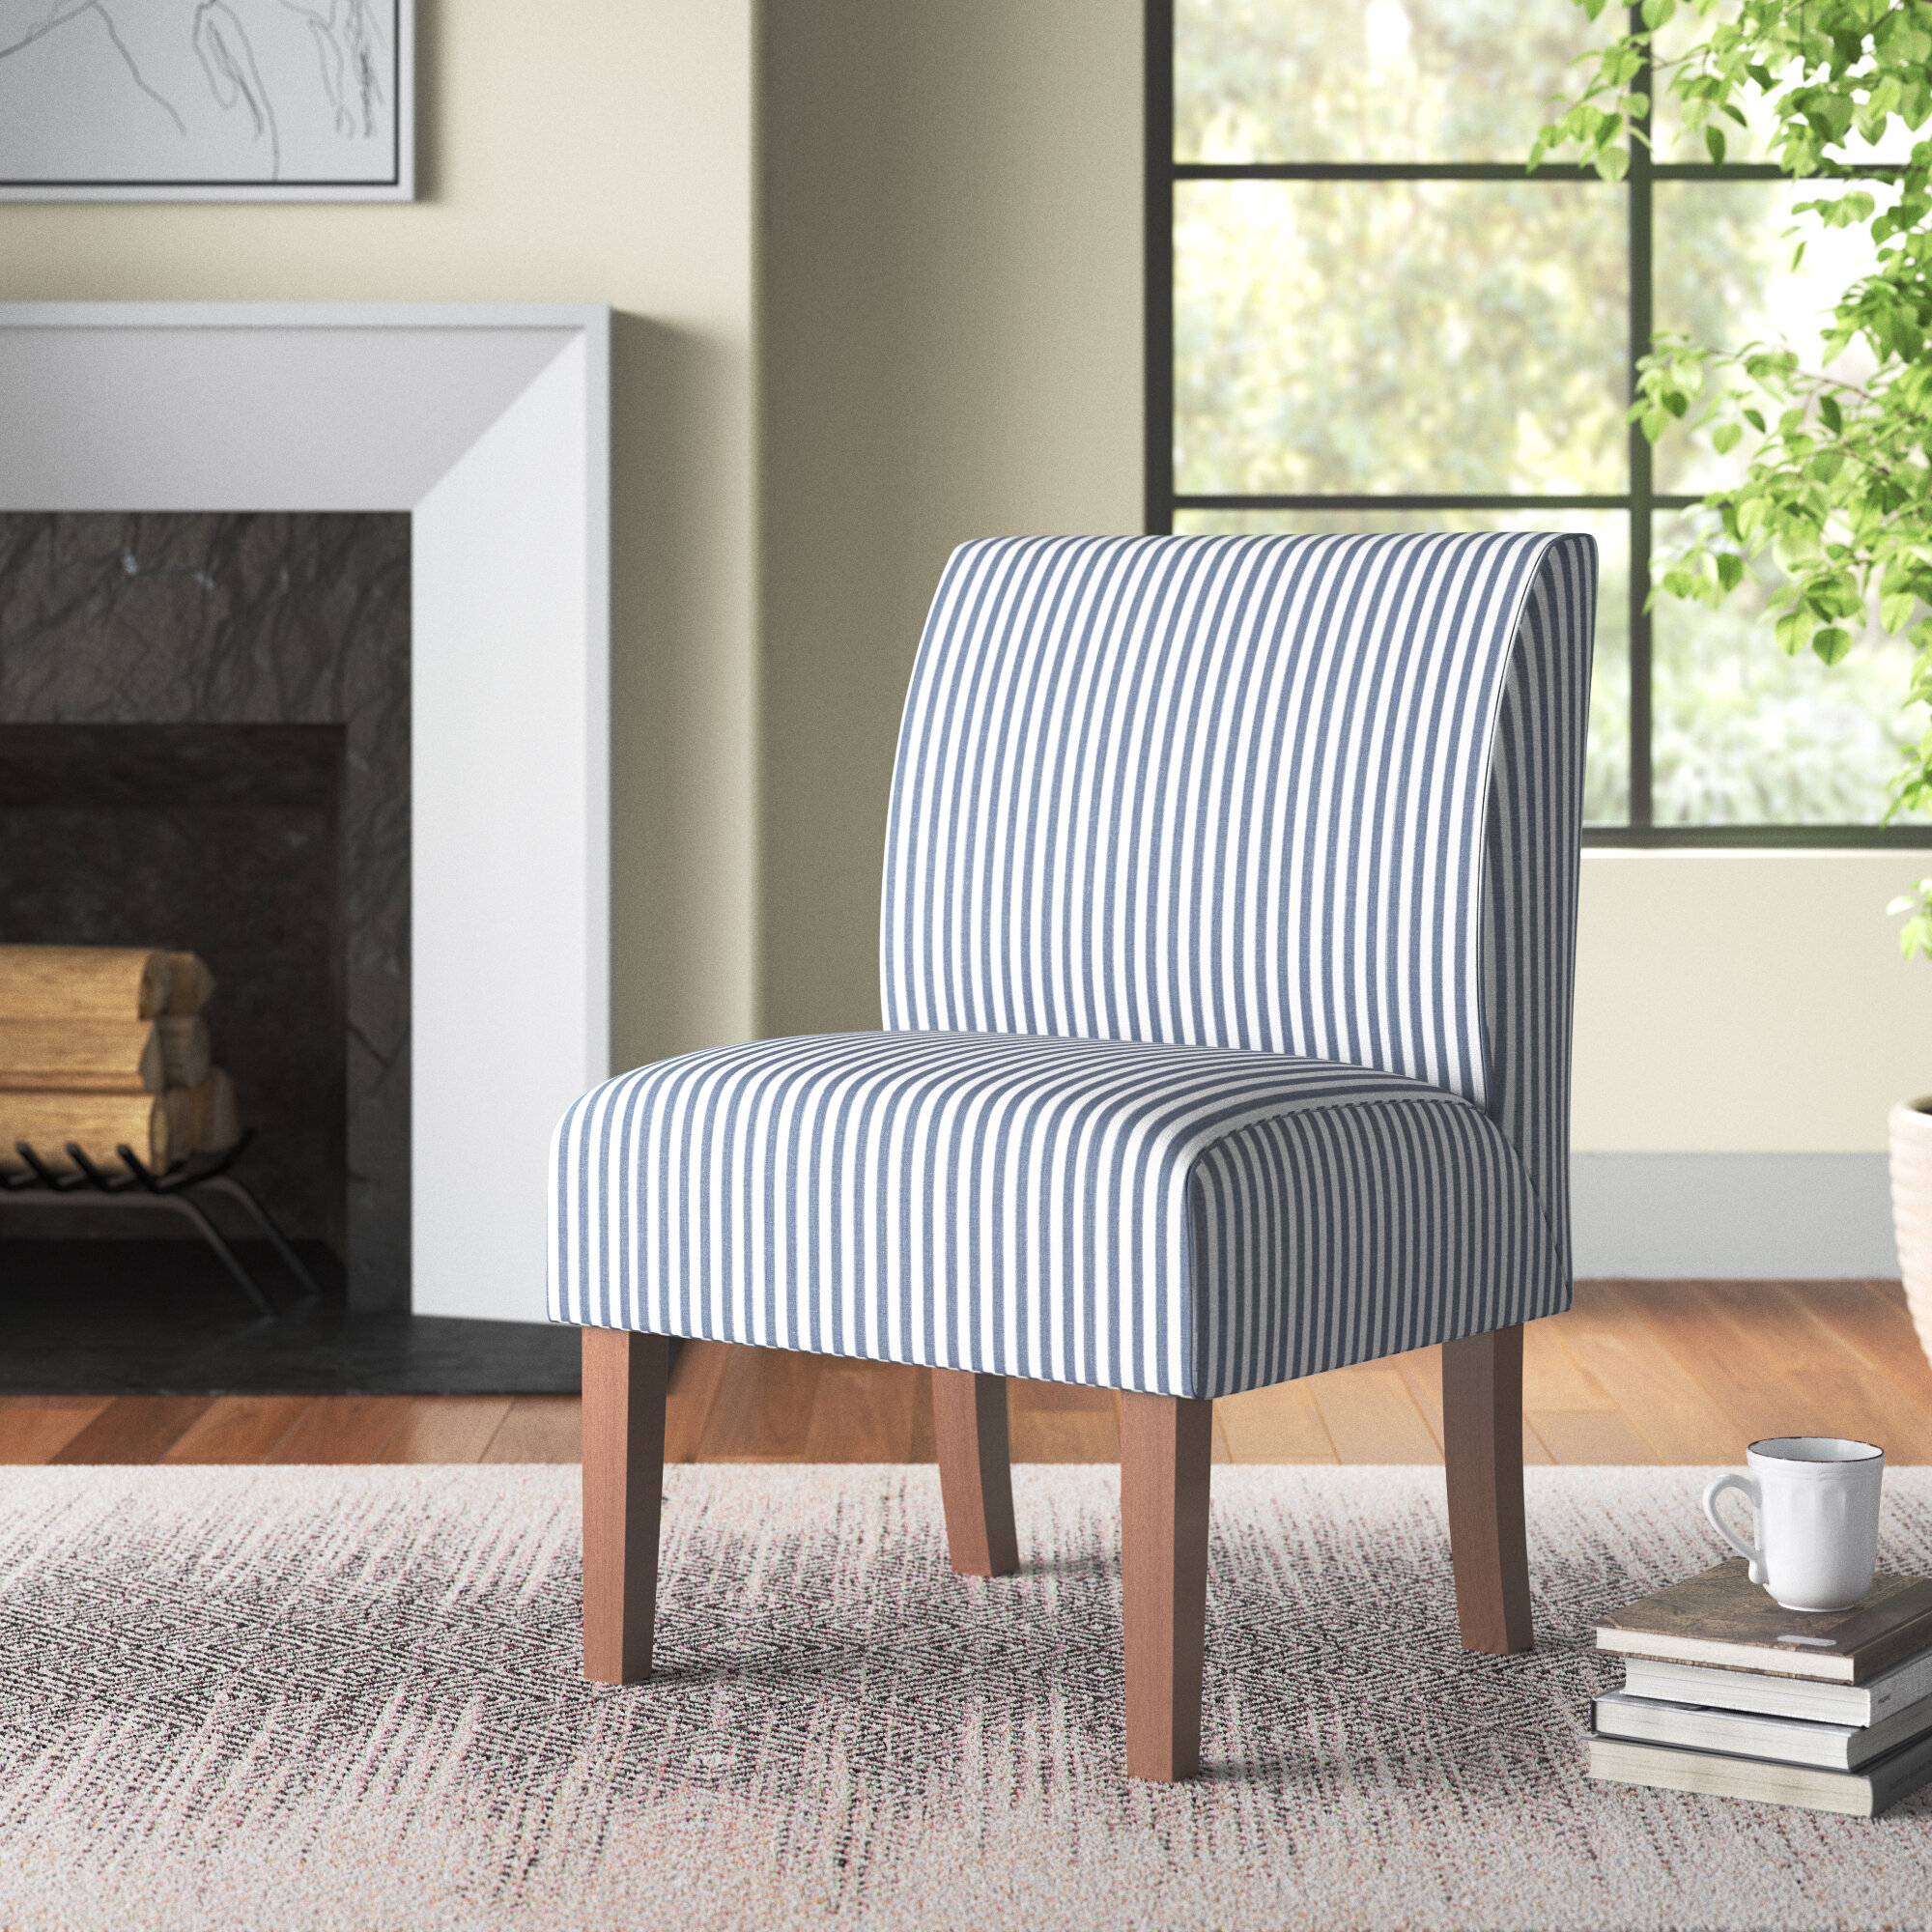 Blue Slipper Accent Chairs You'Ll Love In 2021 | Wayfair Within Daleyza Slipper Chairs (View 8 of 15)